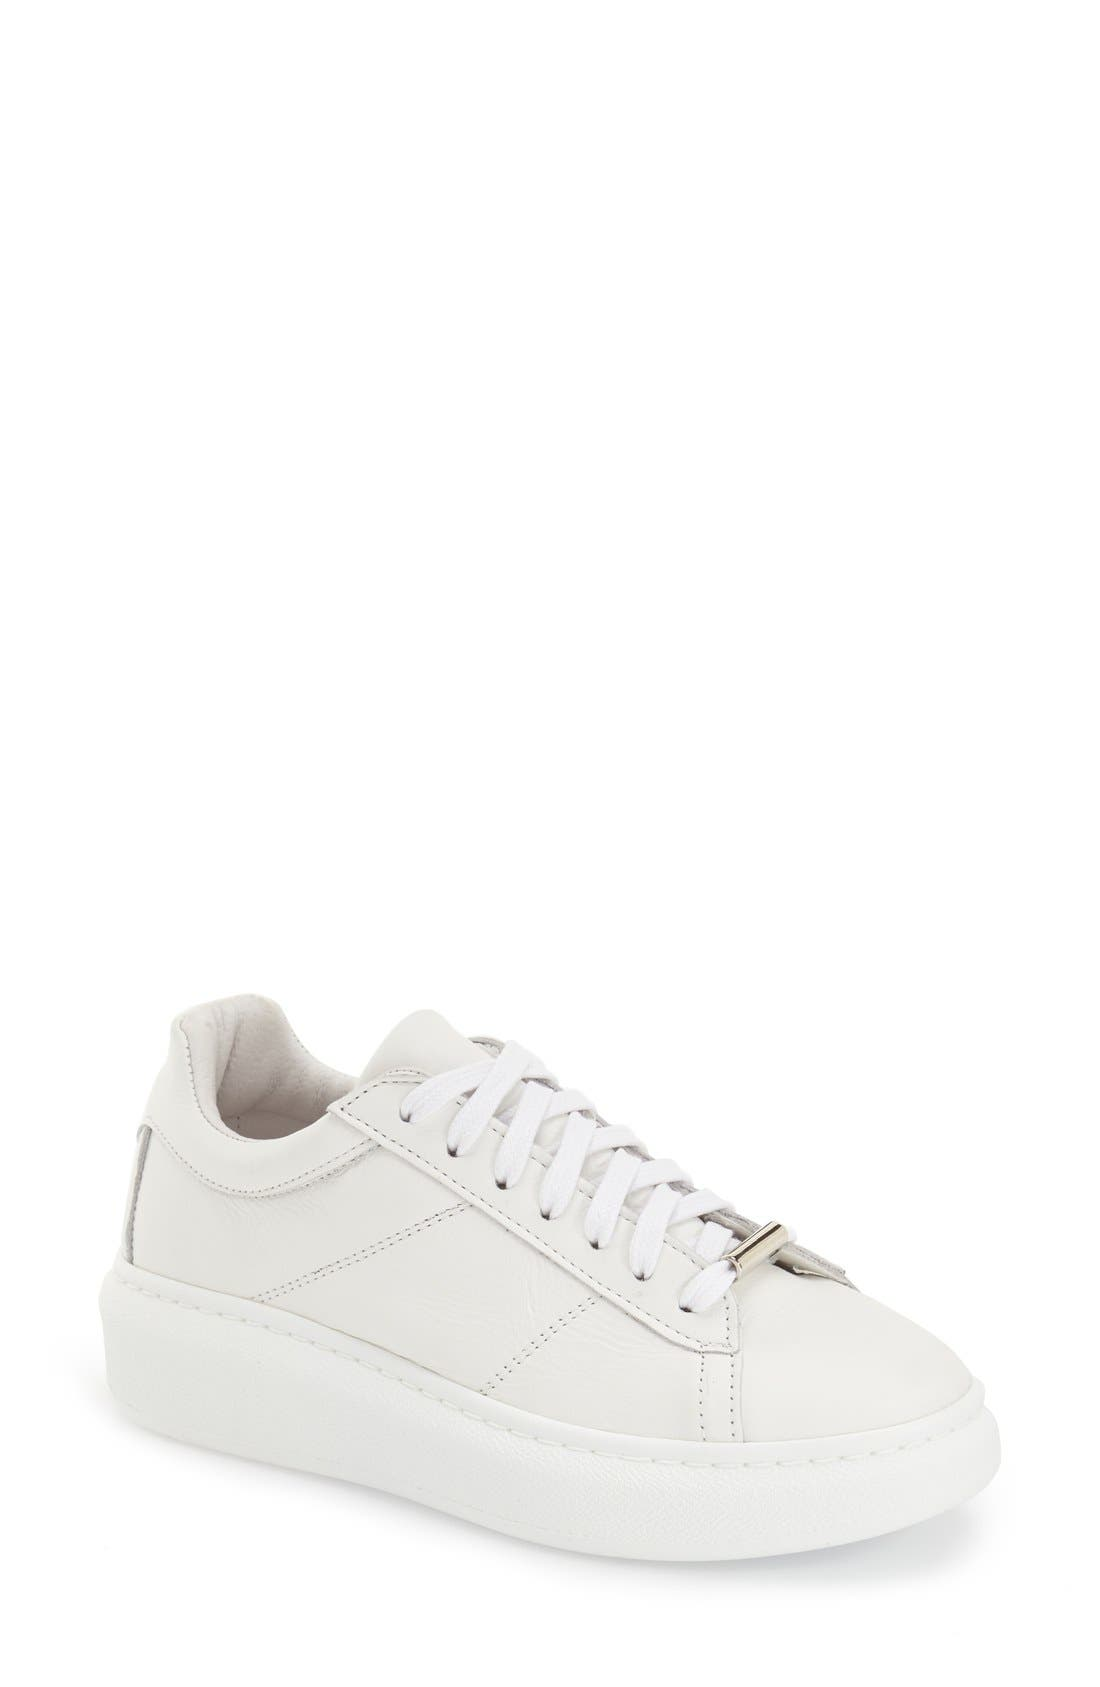 Alternate Image 1 Selected - Topshop 'Toulouse' Leather Sneaker (Women)